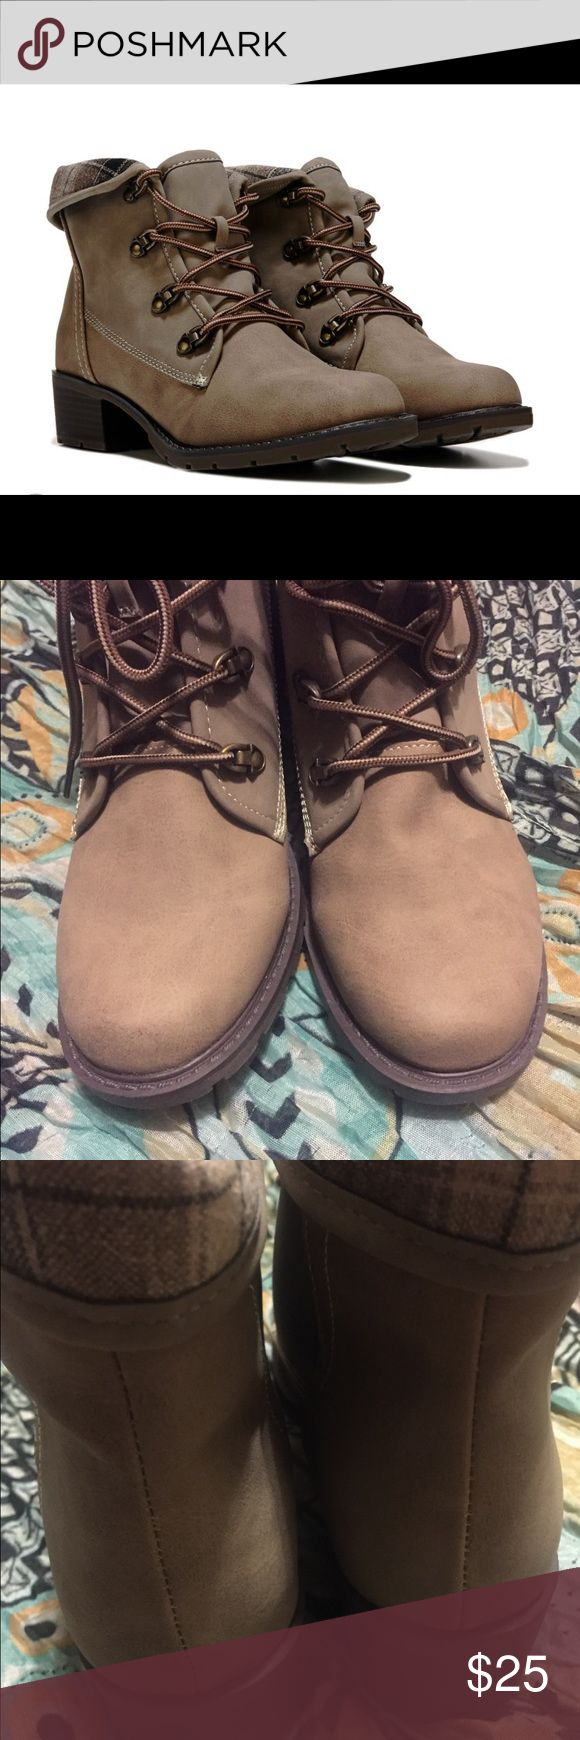 NIB Sporto Flipper Lace Up Boots These boots are brand new, and have never been worn! Sporto Shoes Lace Up Boots